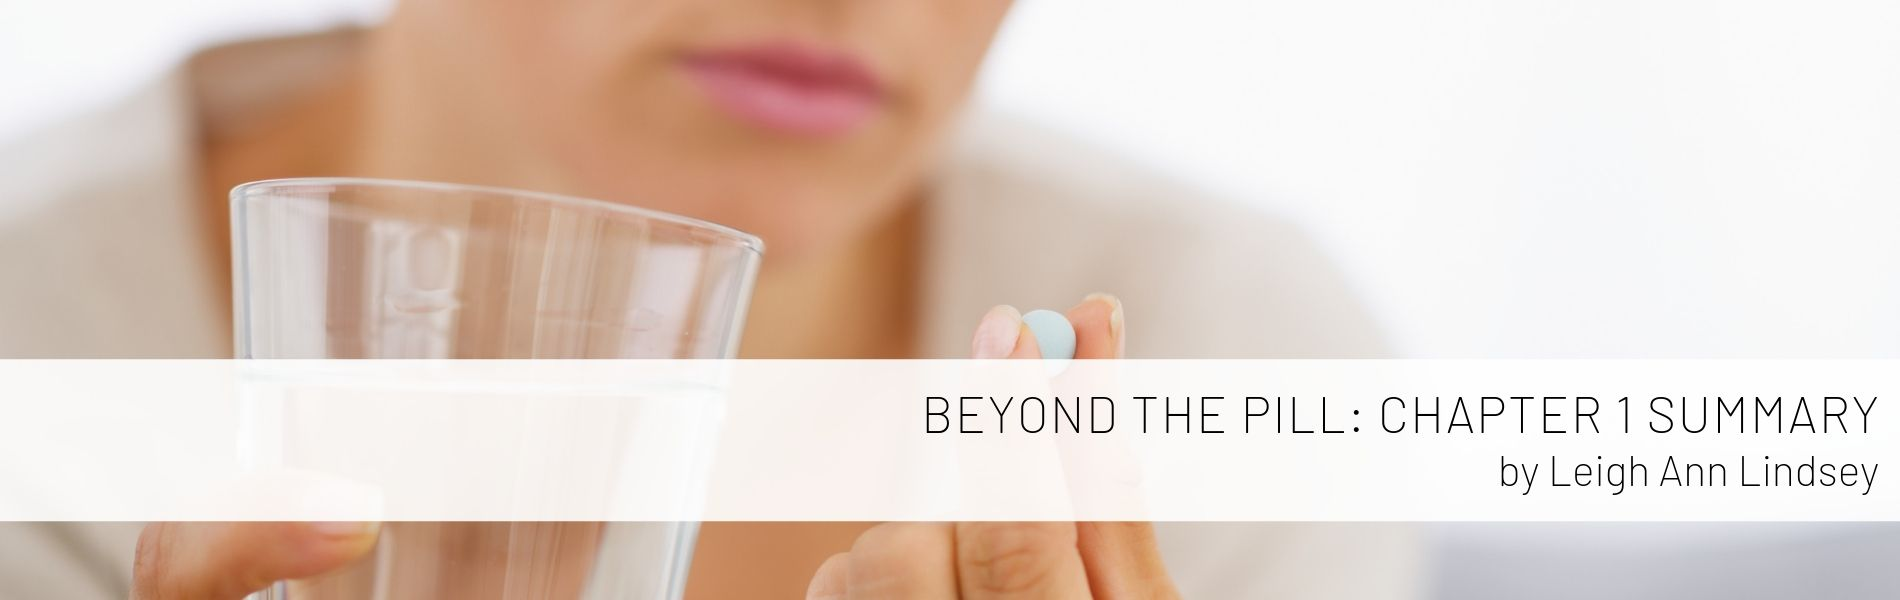 Beyond the Pill Chapter 1 Summary by Leigh Ann Lindsey